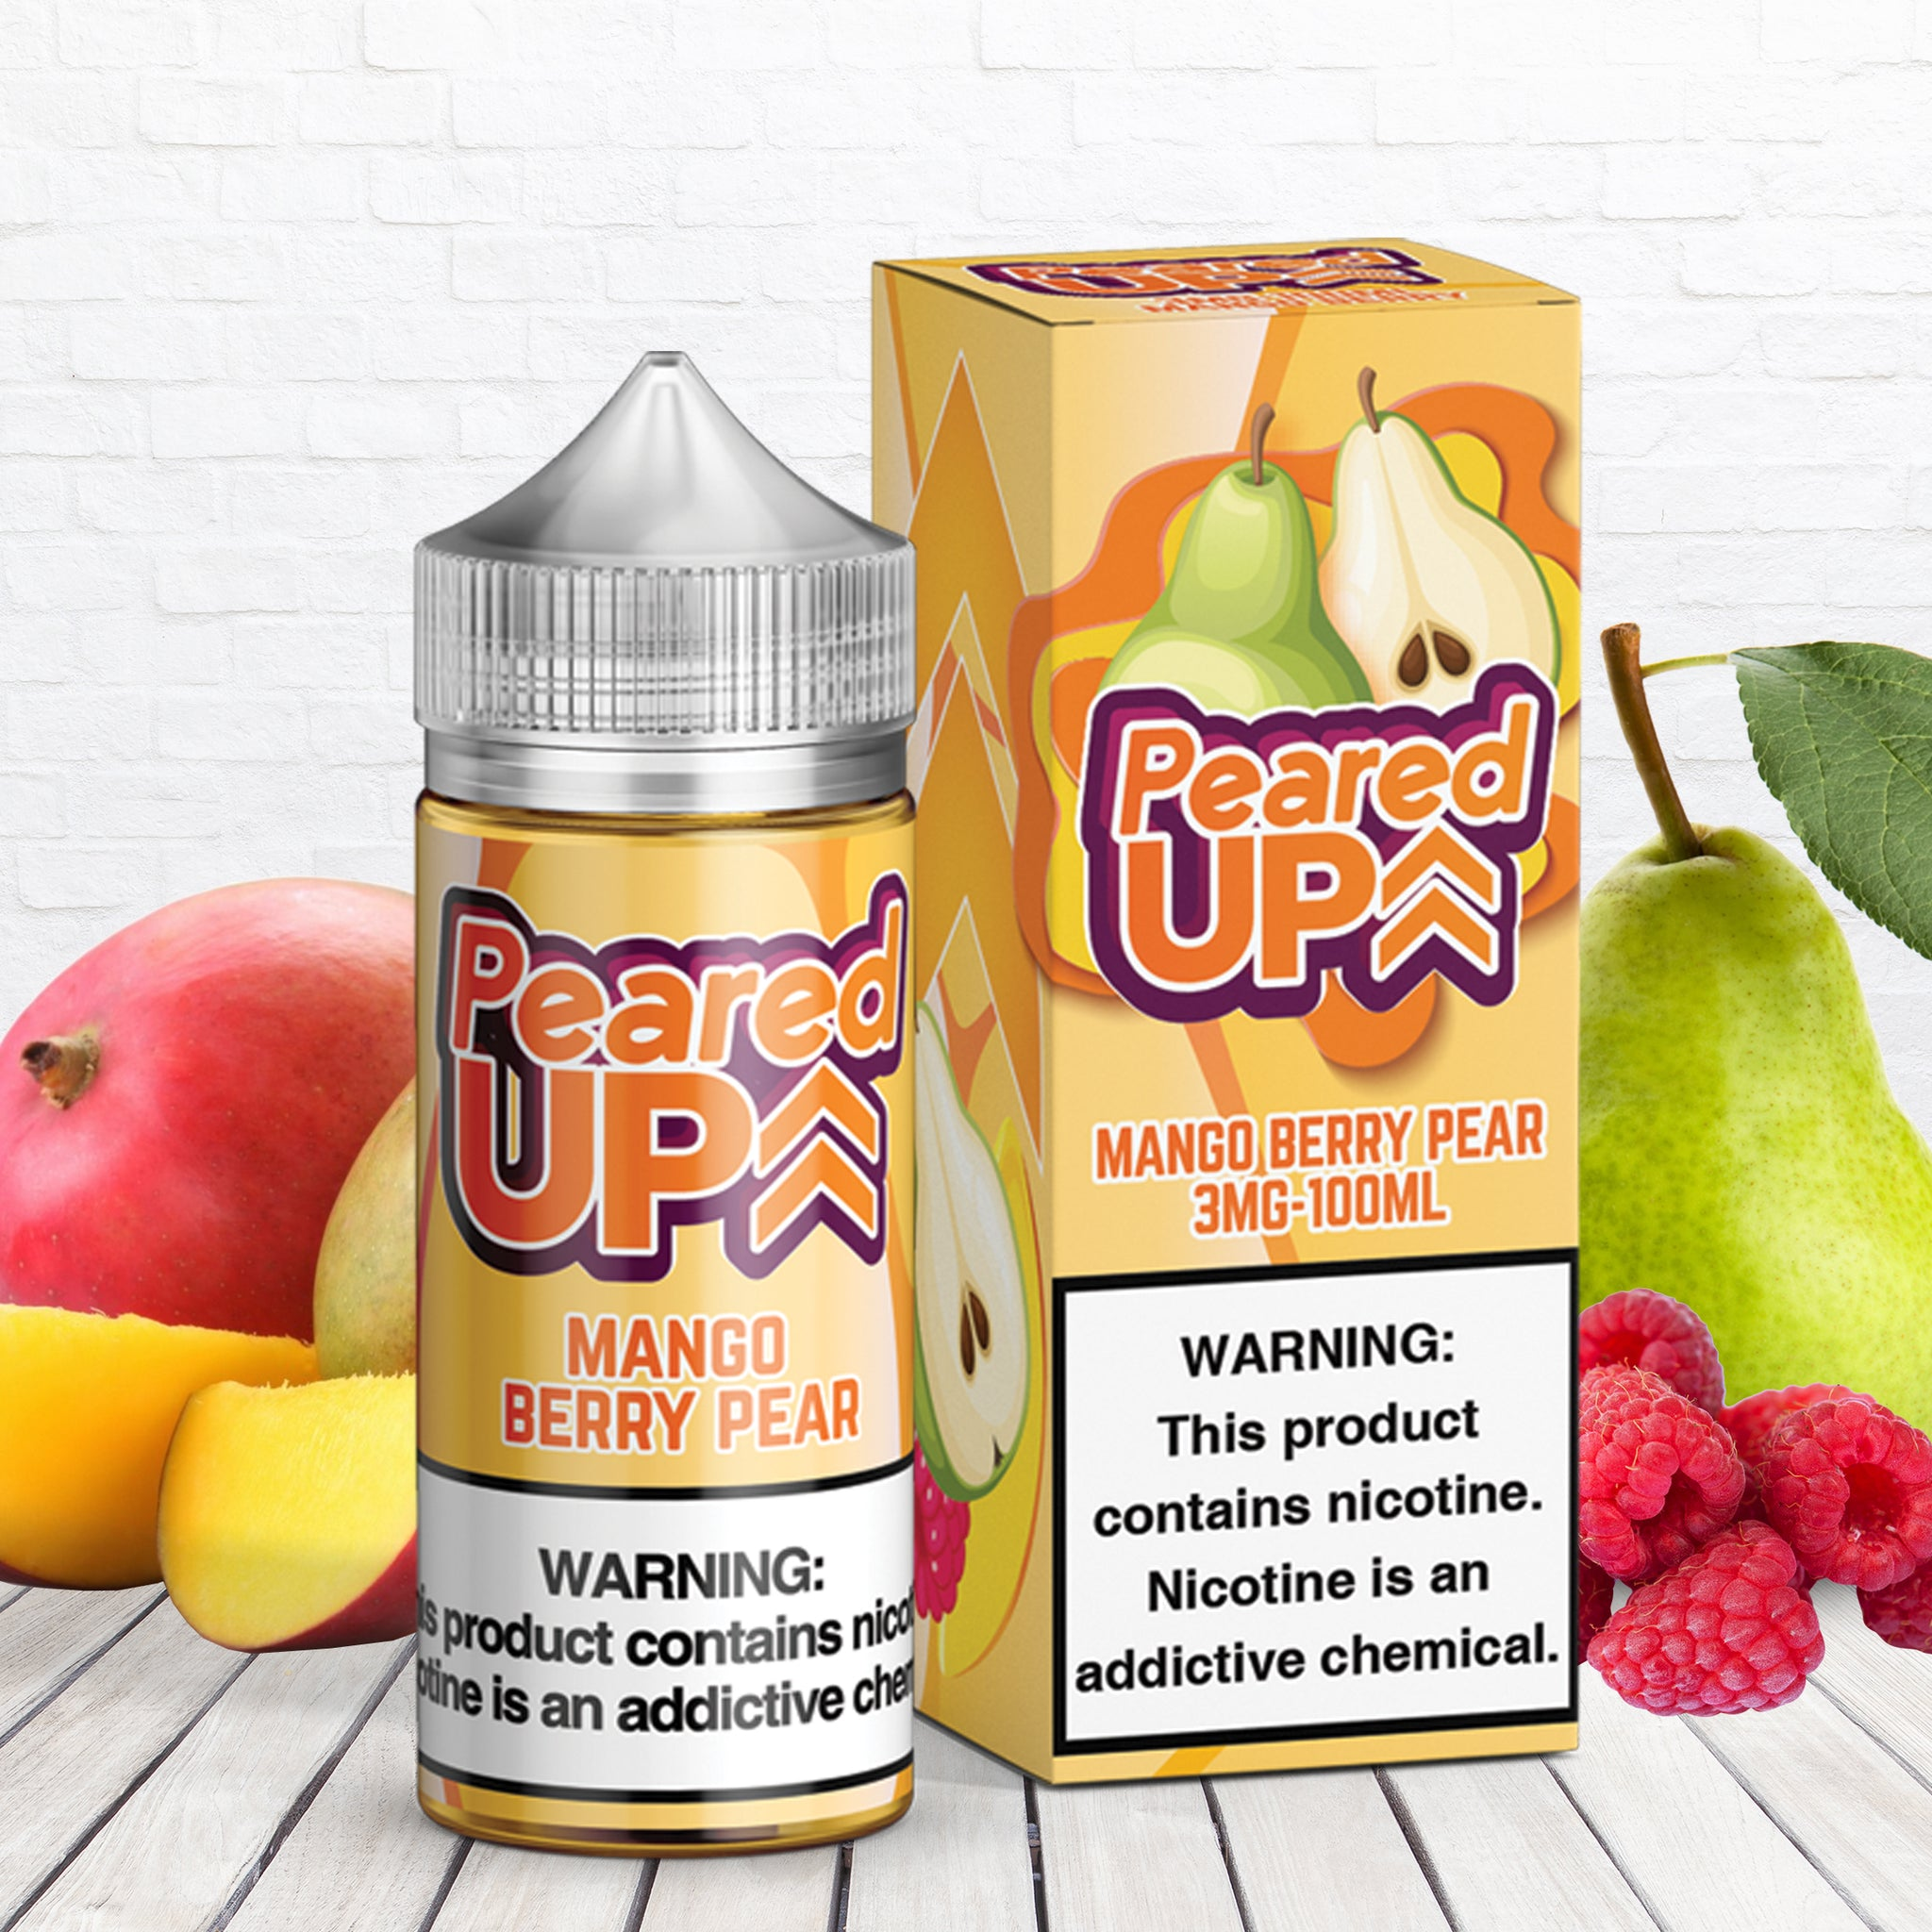 Mango Berry Pear